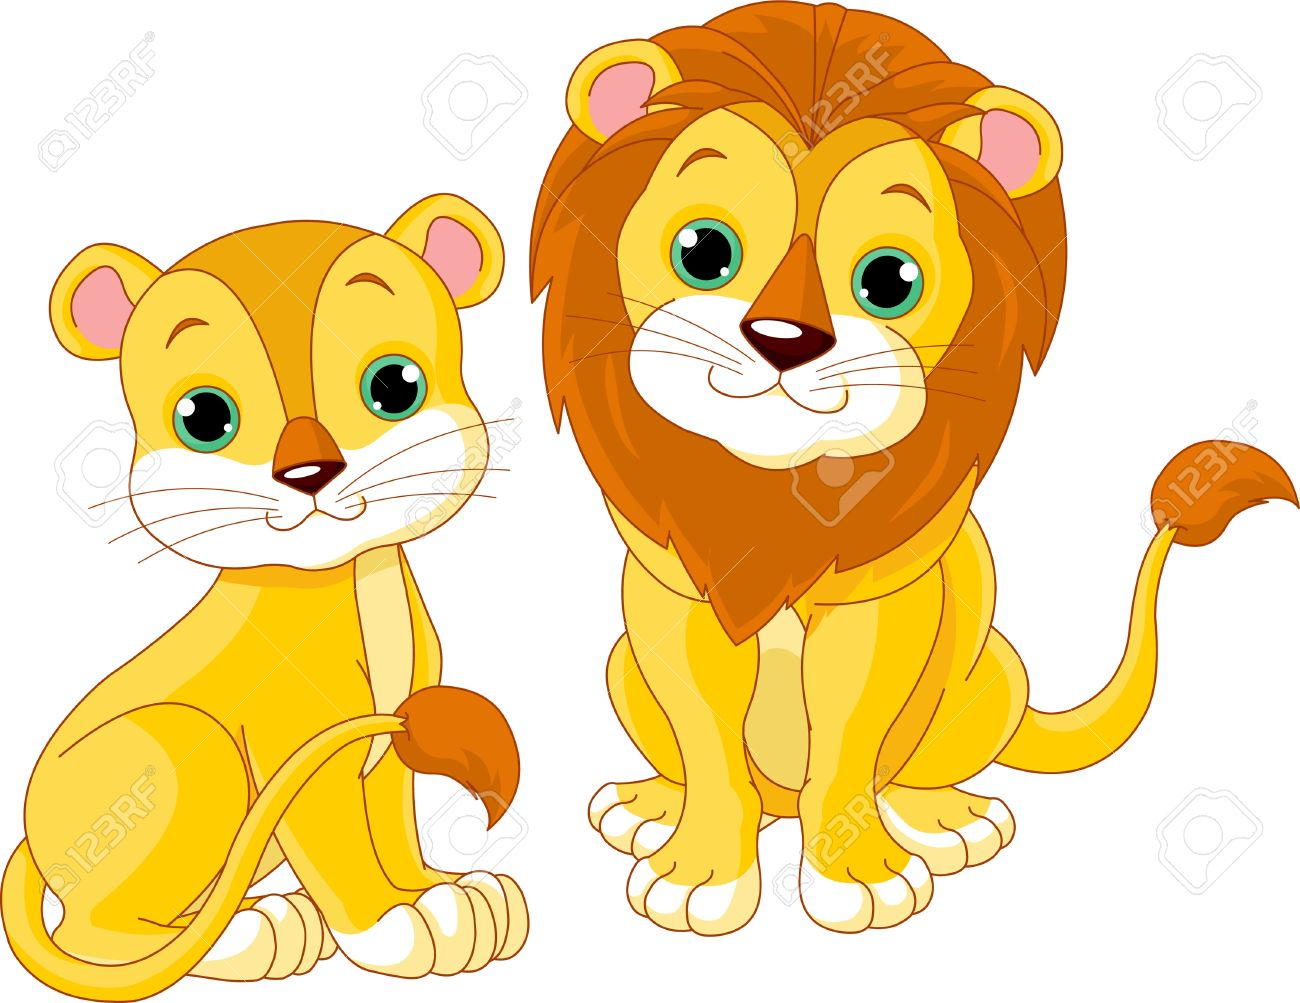 Illustration Of Cute Lion .-Illustration of cute lion .-12